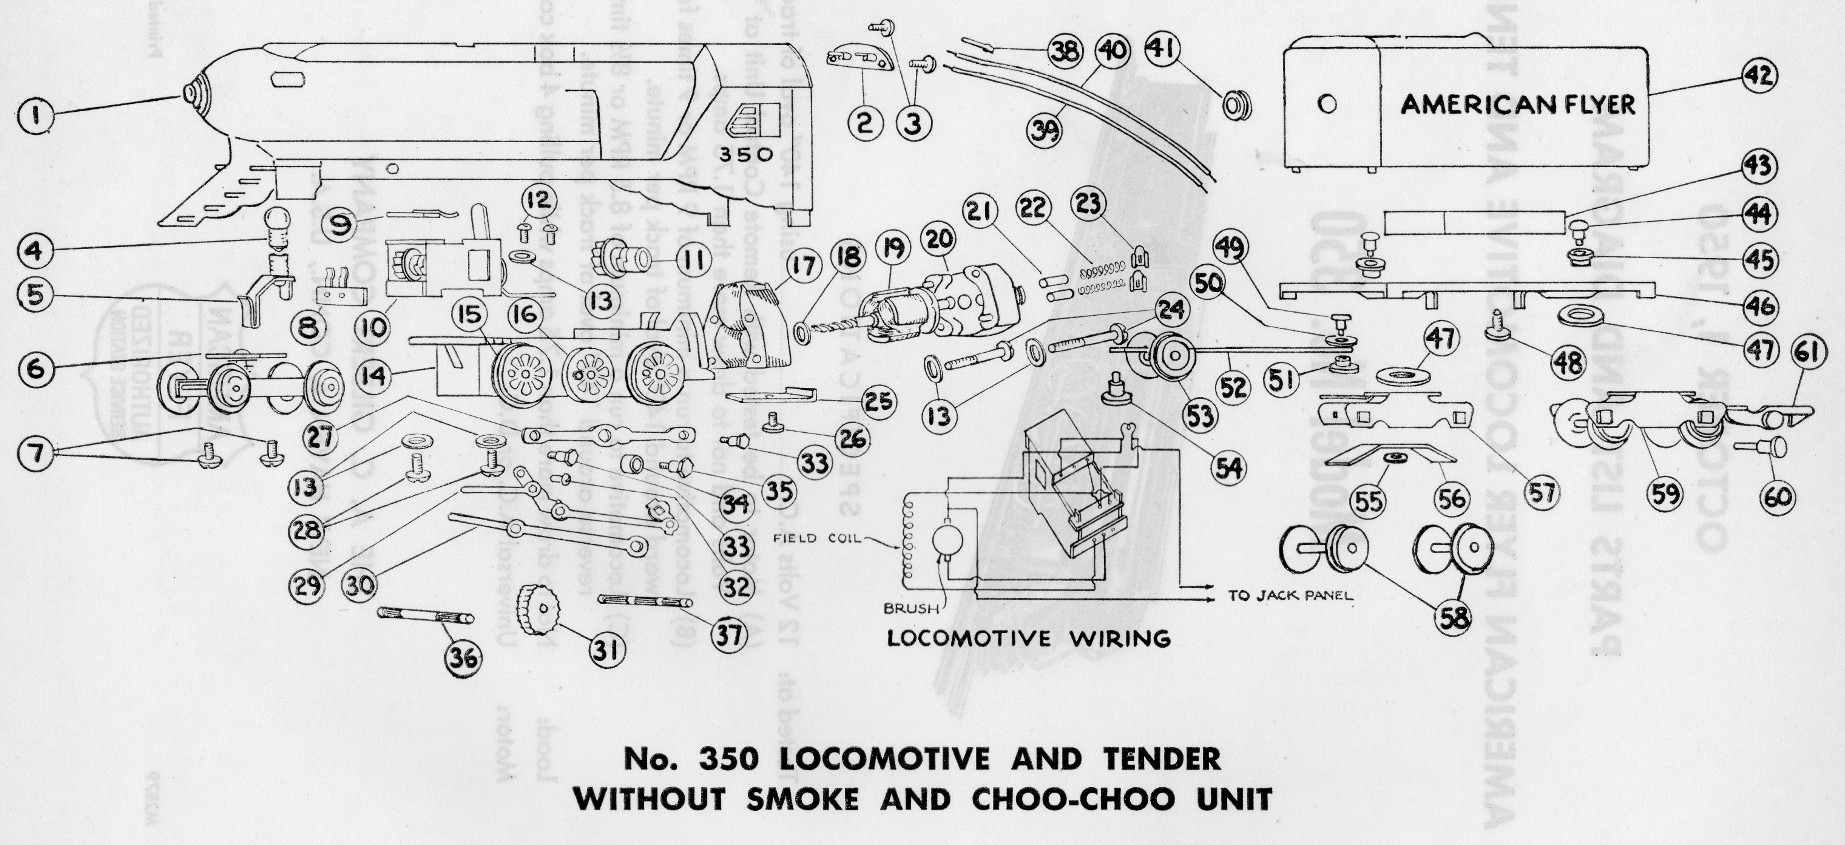 American Flyer Model 350 Parts List And Diagram